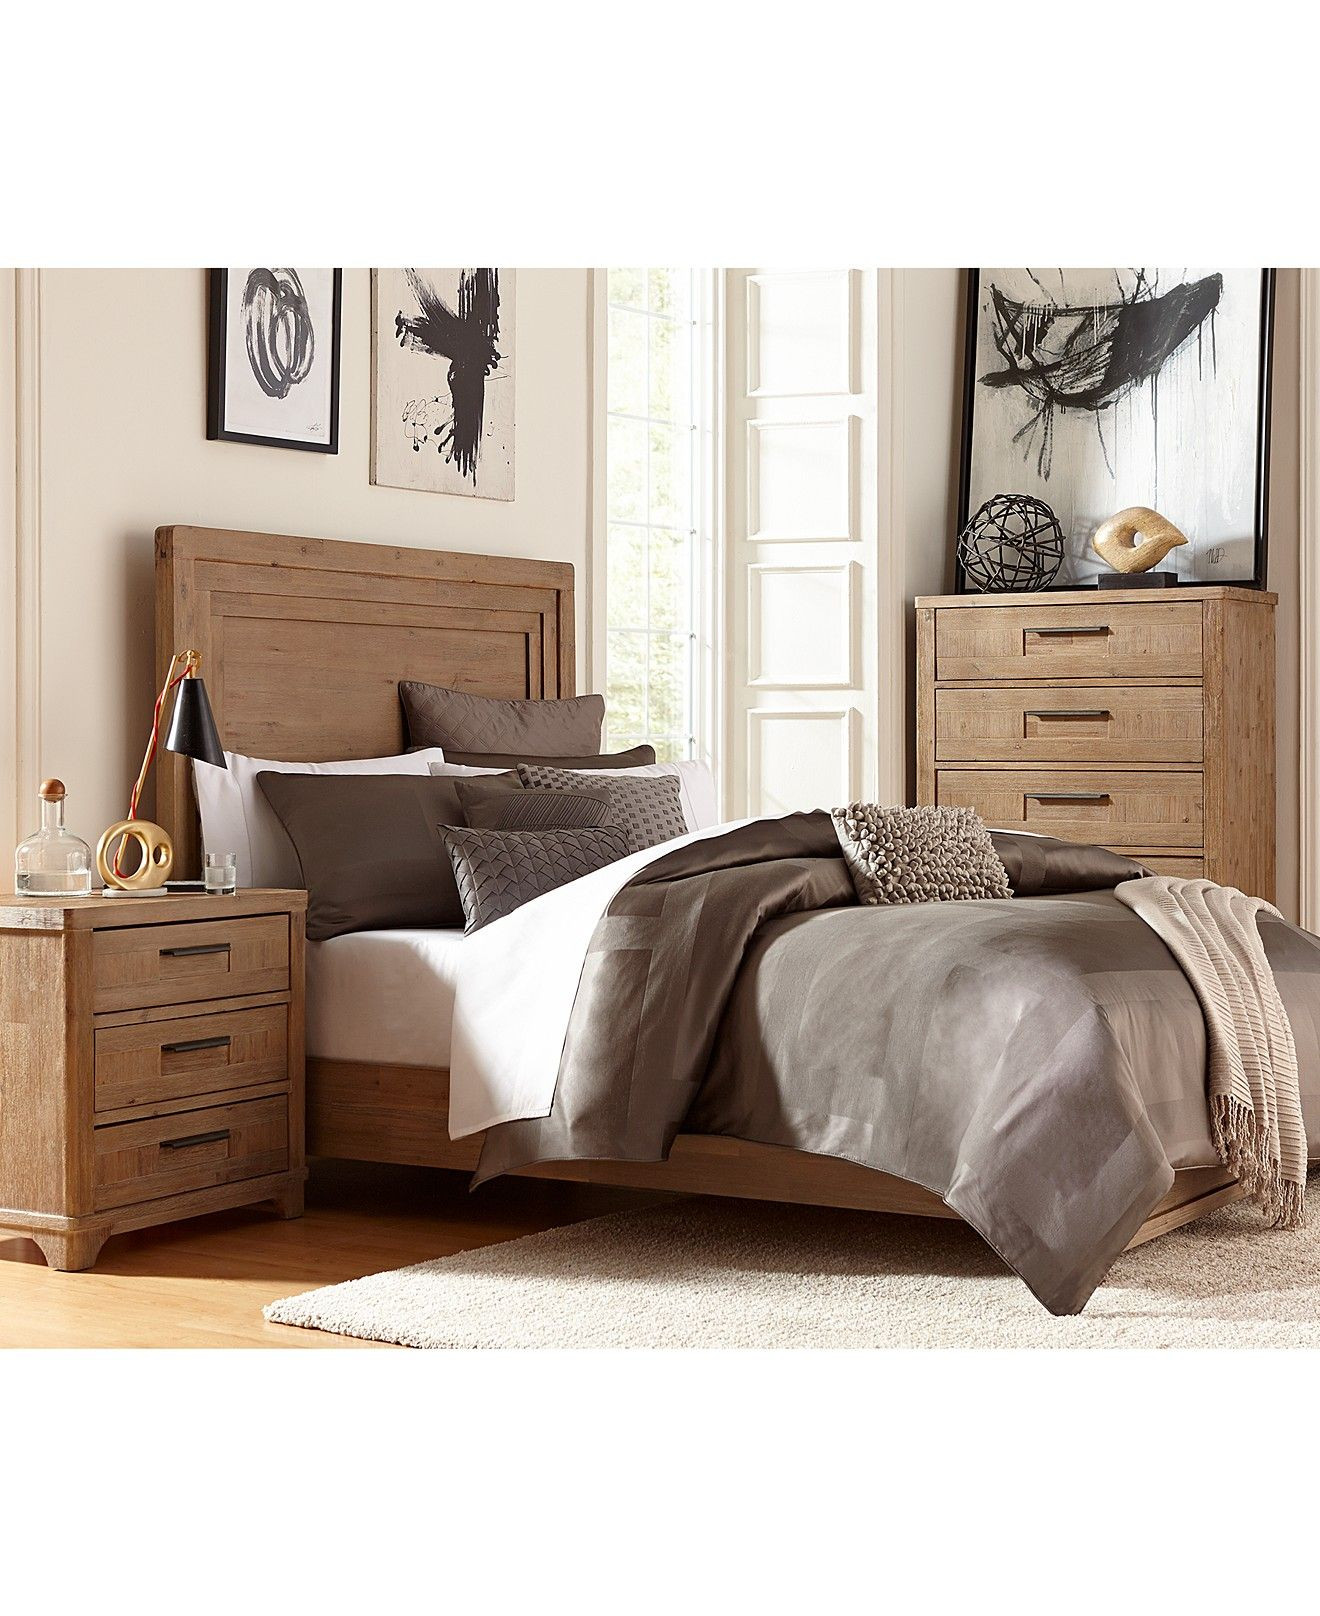 Best ideas about Macys Bedroom Sets . Save or Pin Summerside 3 Piece Queen Bedroom Furniture Set with Chest Now.